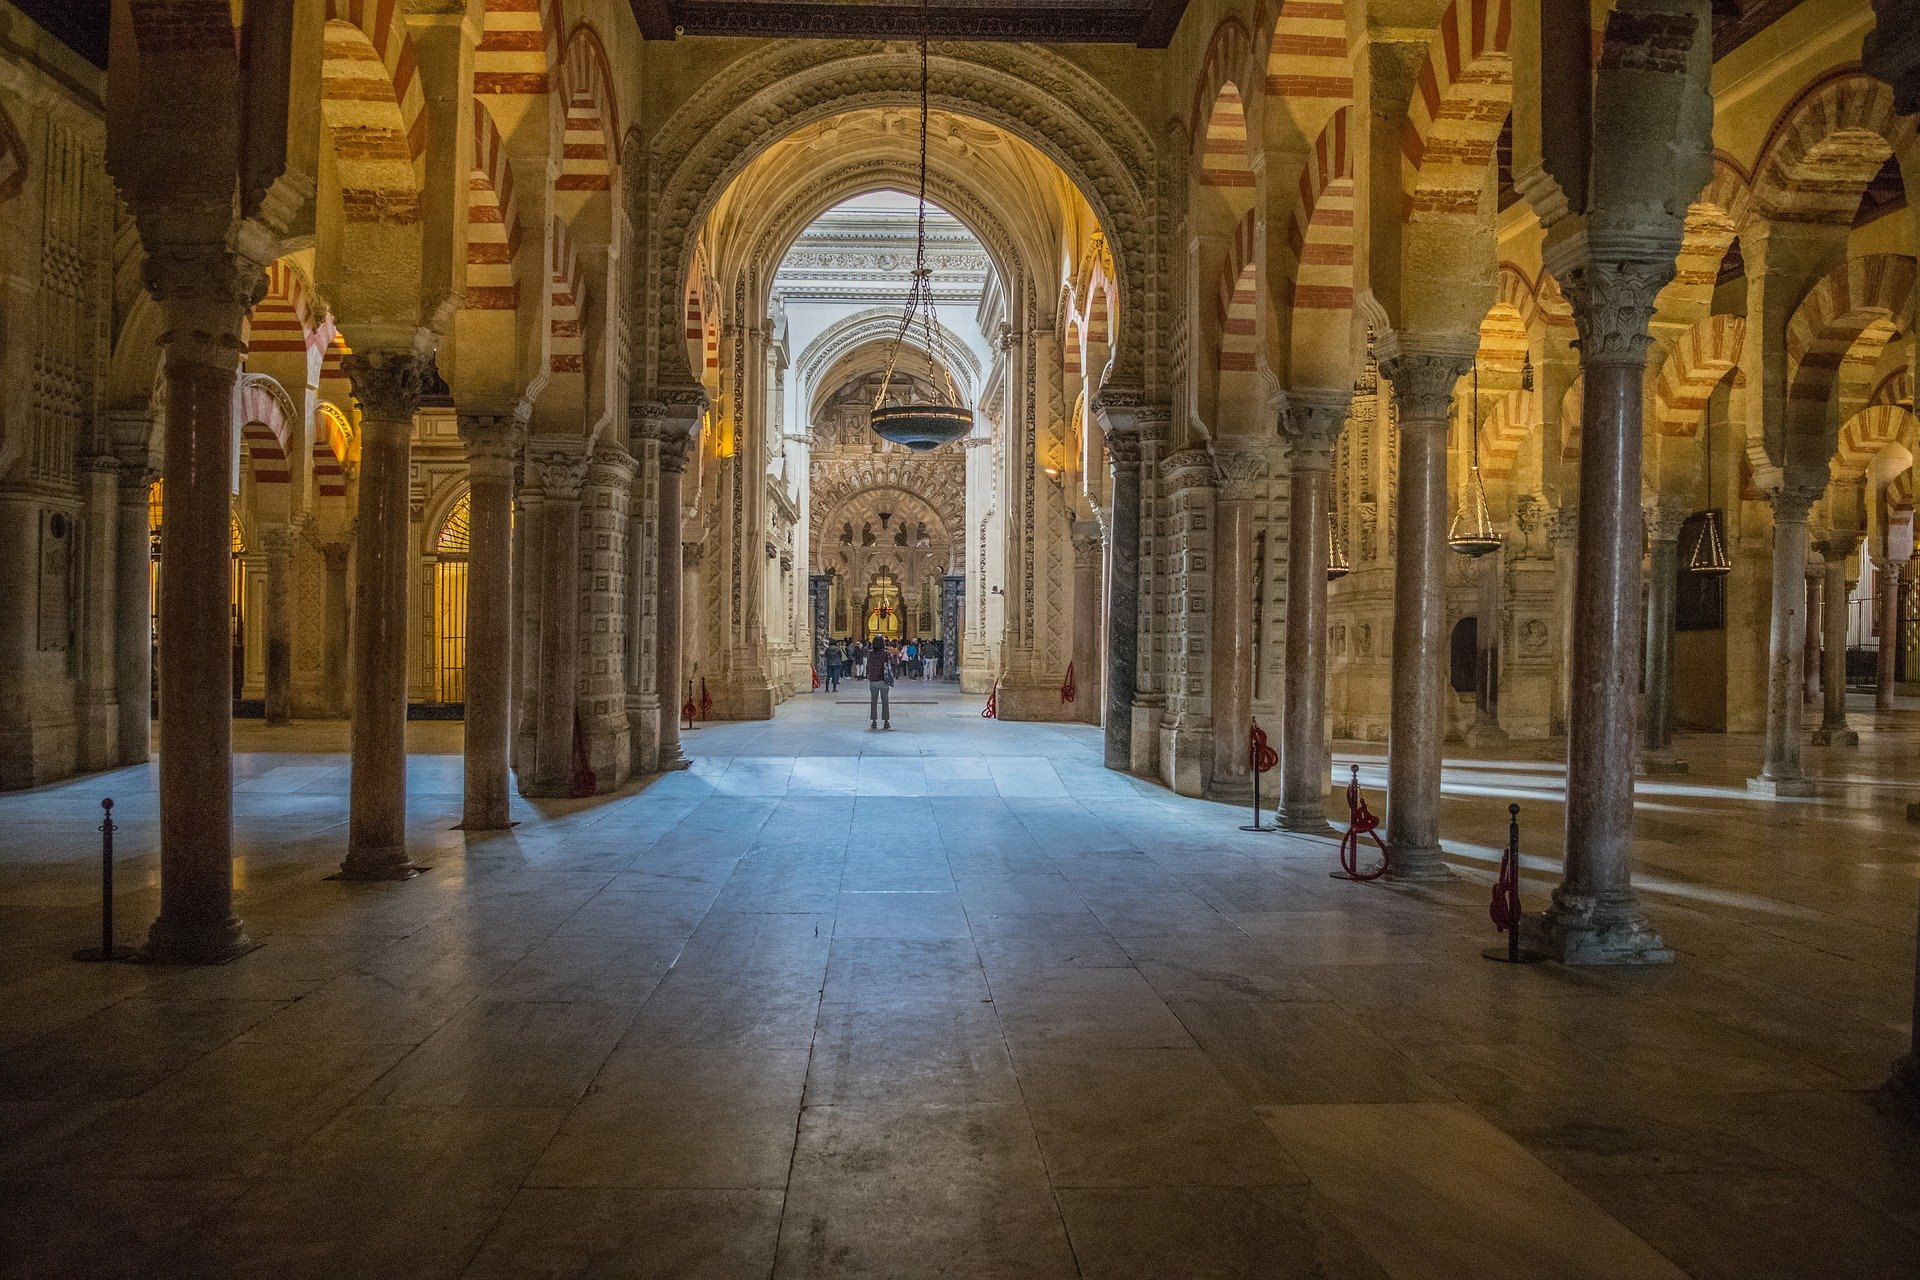 Romantic places to stay near the Mezquita of Córdoba